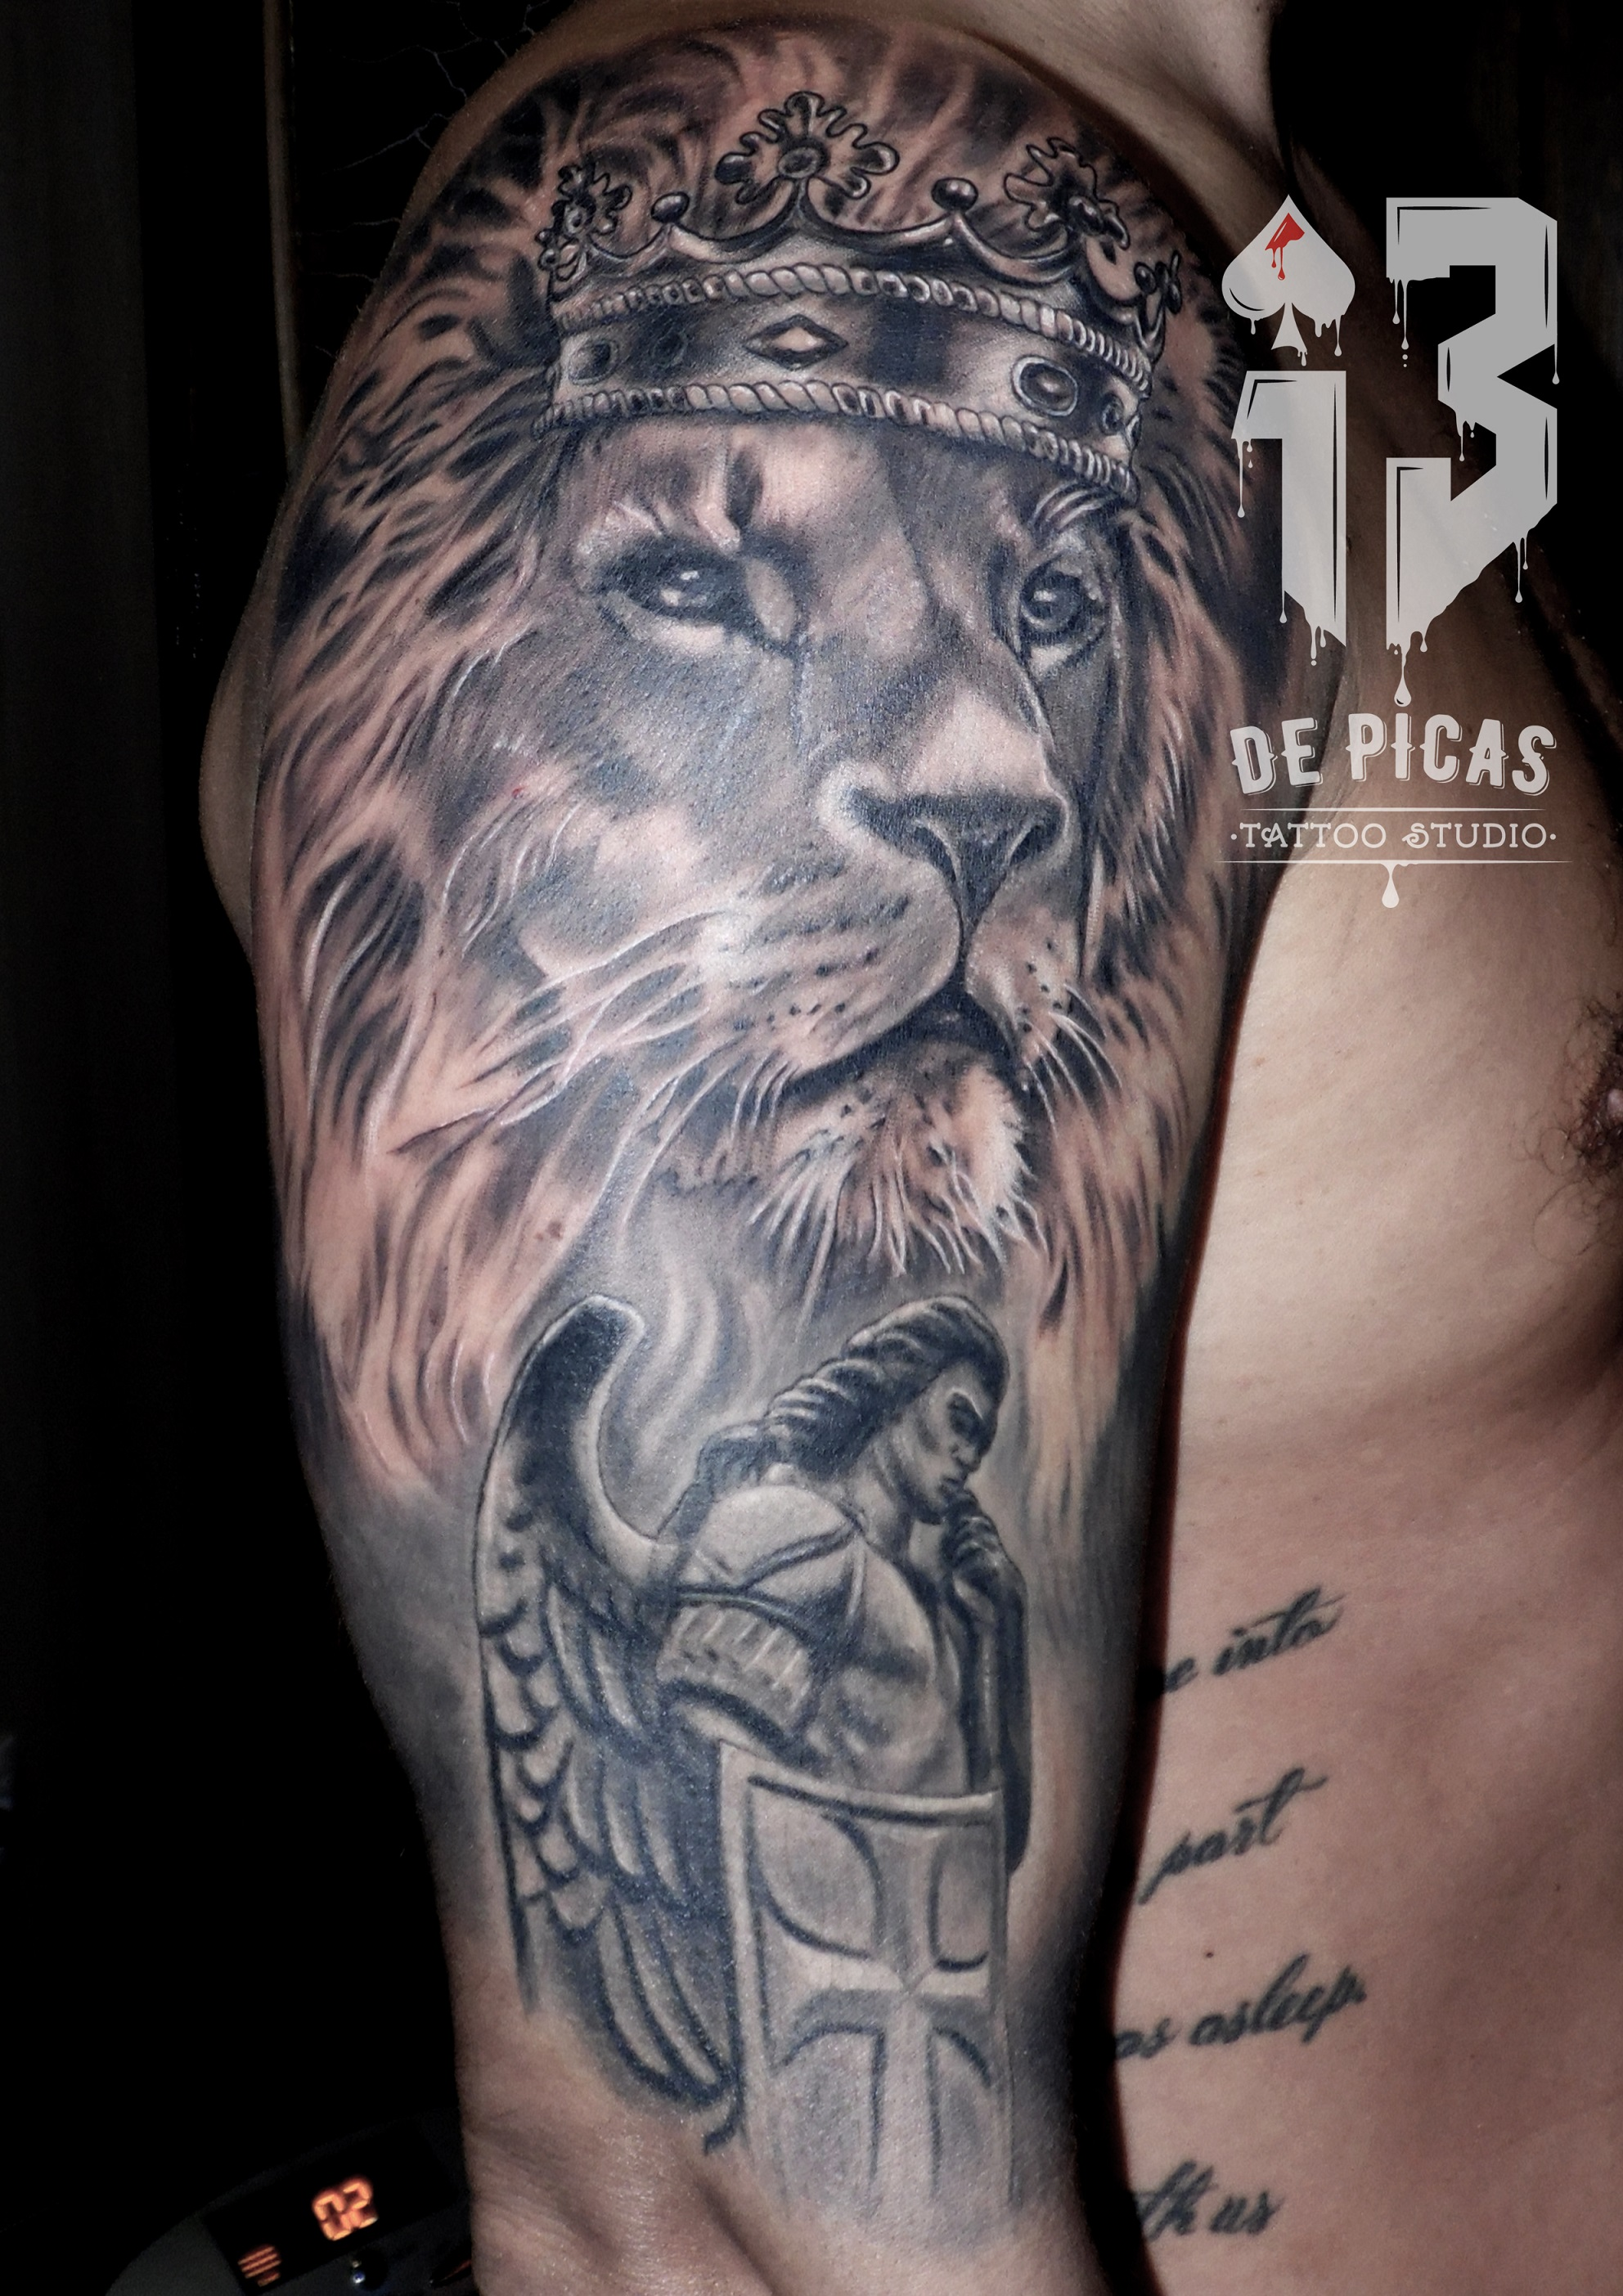 Tattoos Realismo Leones 13depicas Com Studio Tattoo Piercing